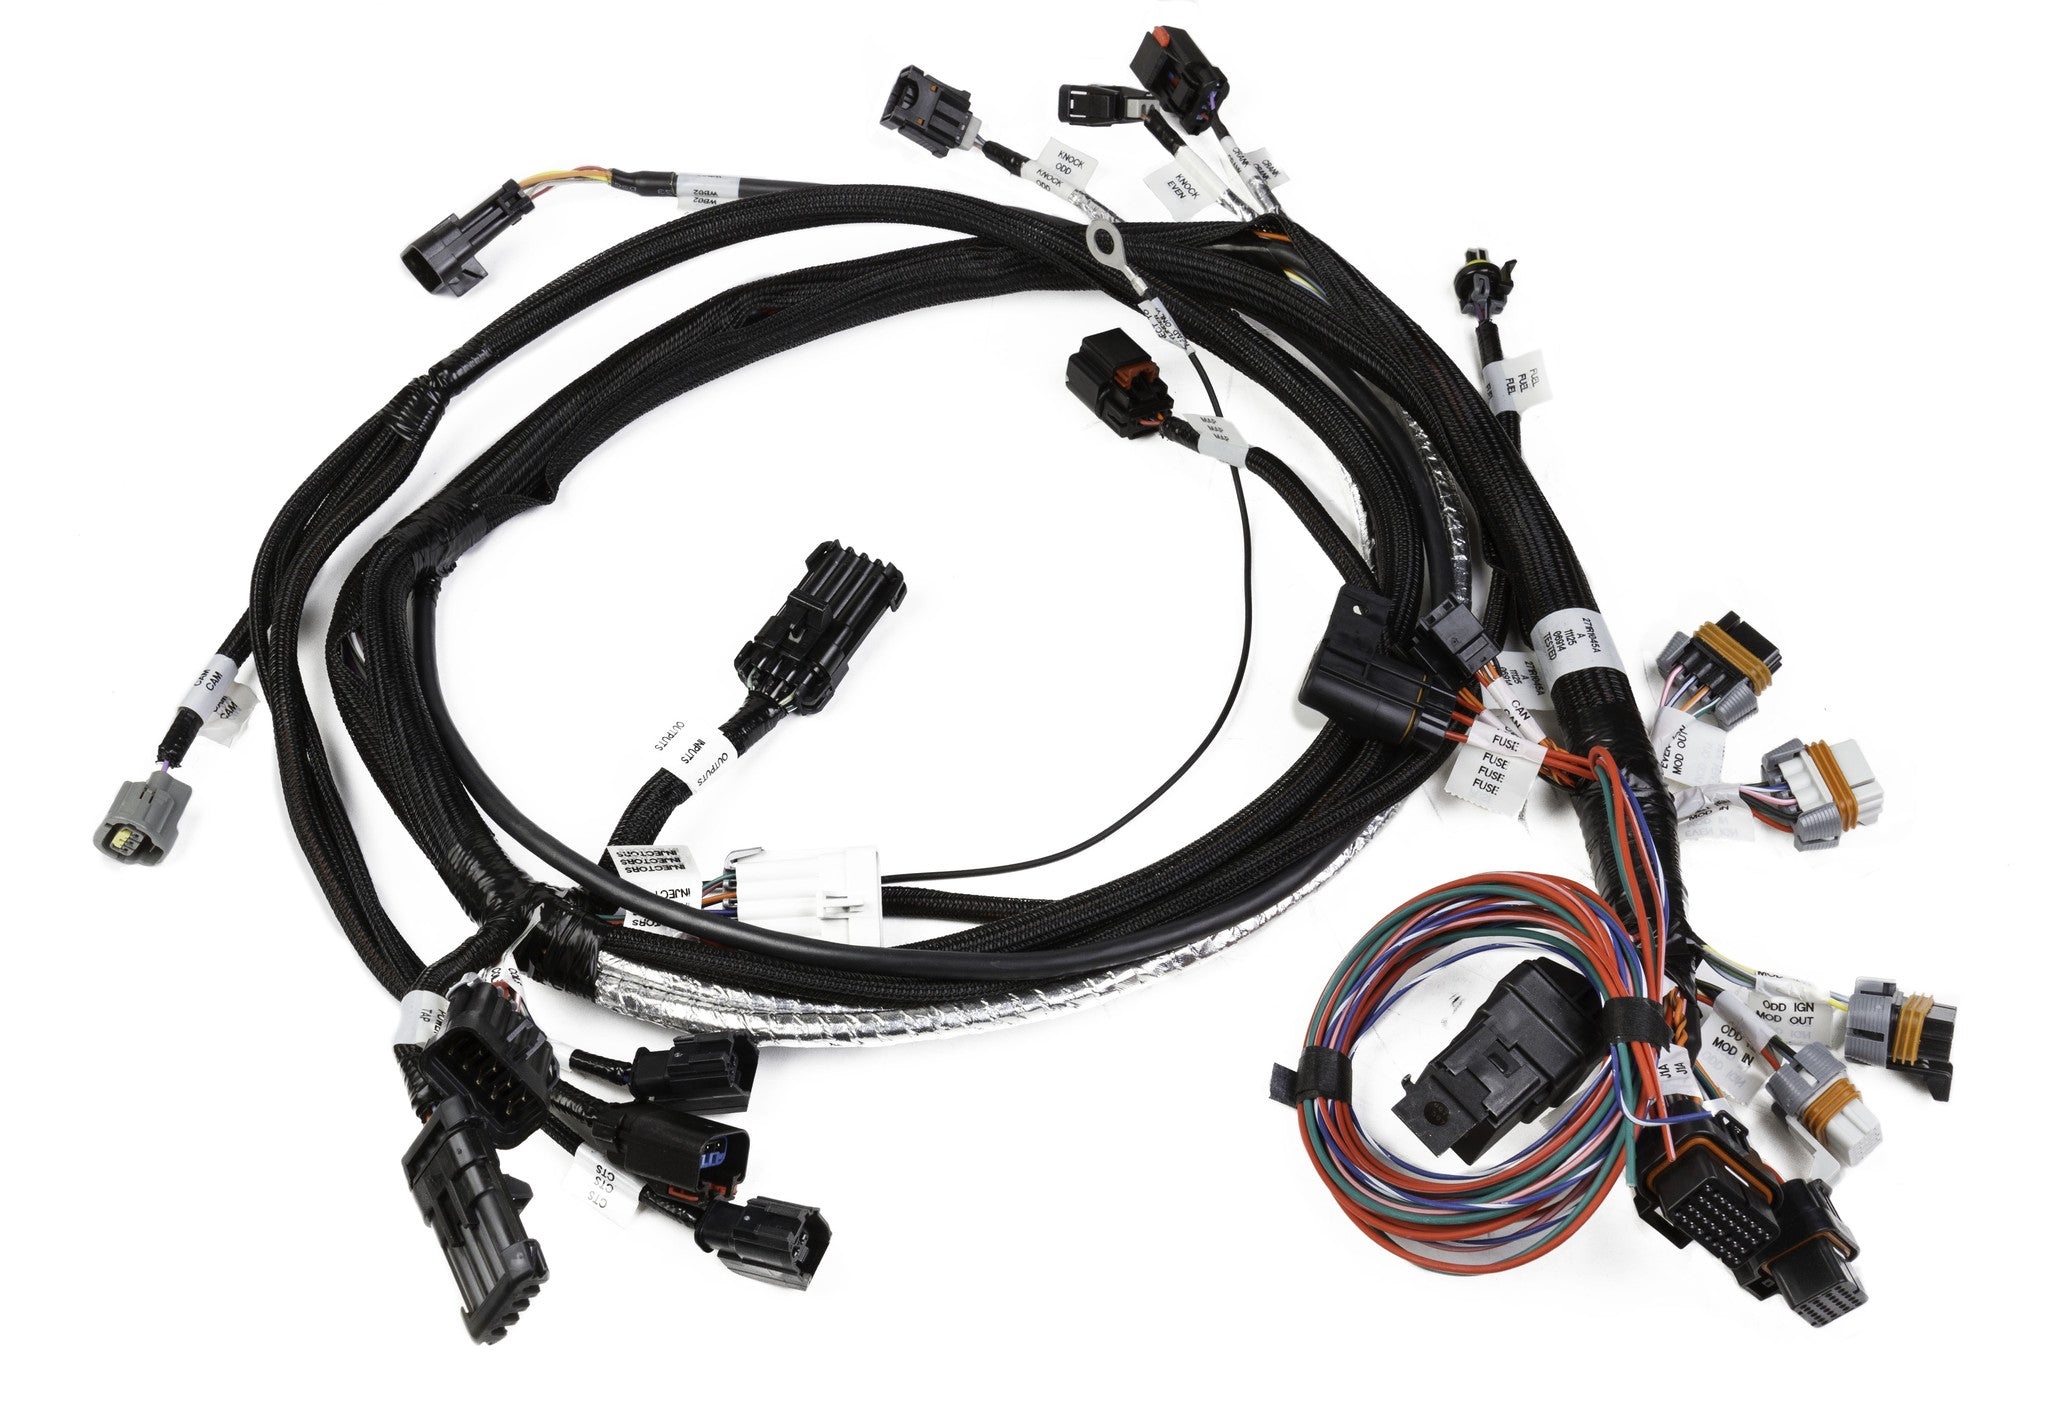 Redline Build A Kit Motorsports Inc Custom Efi Wiring Harness Hemi Main Early W Tps Iac